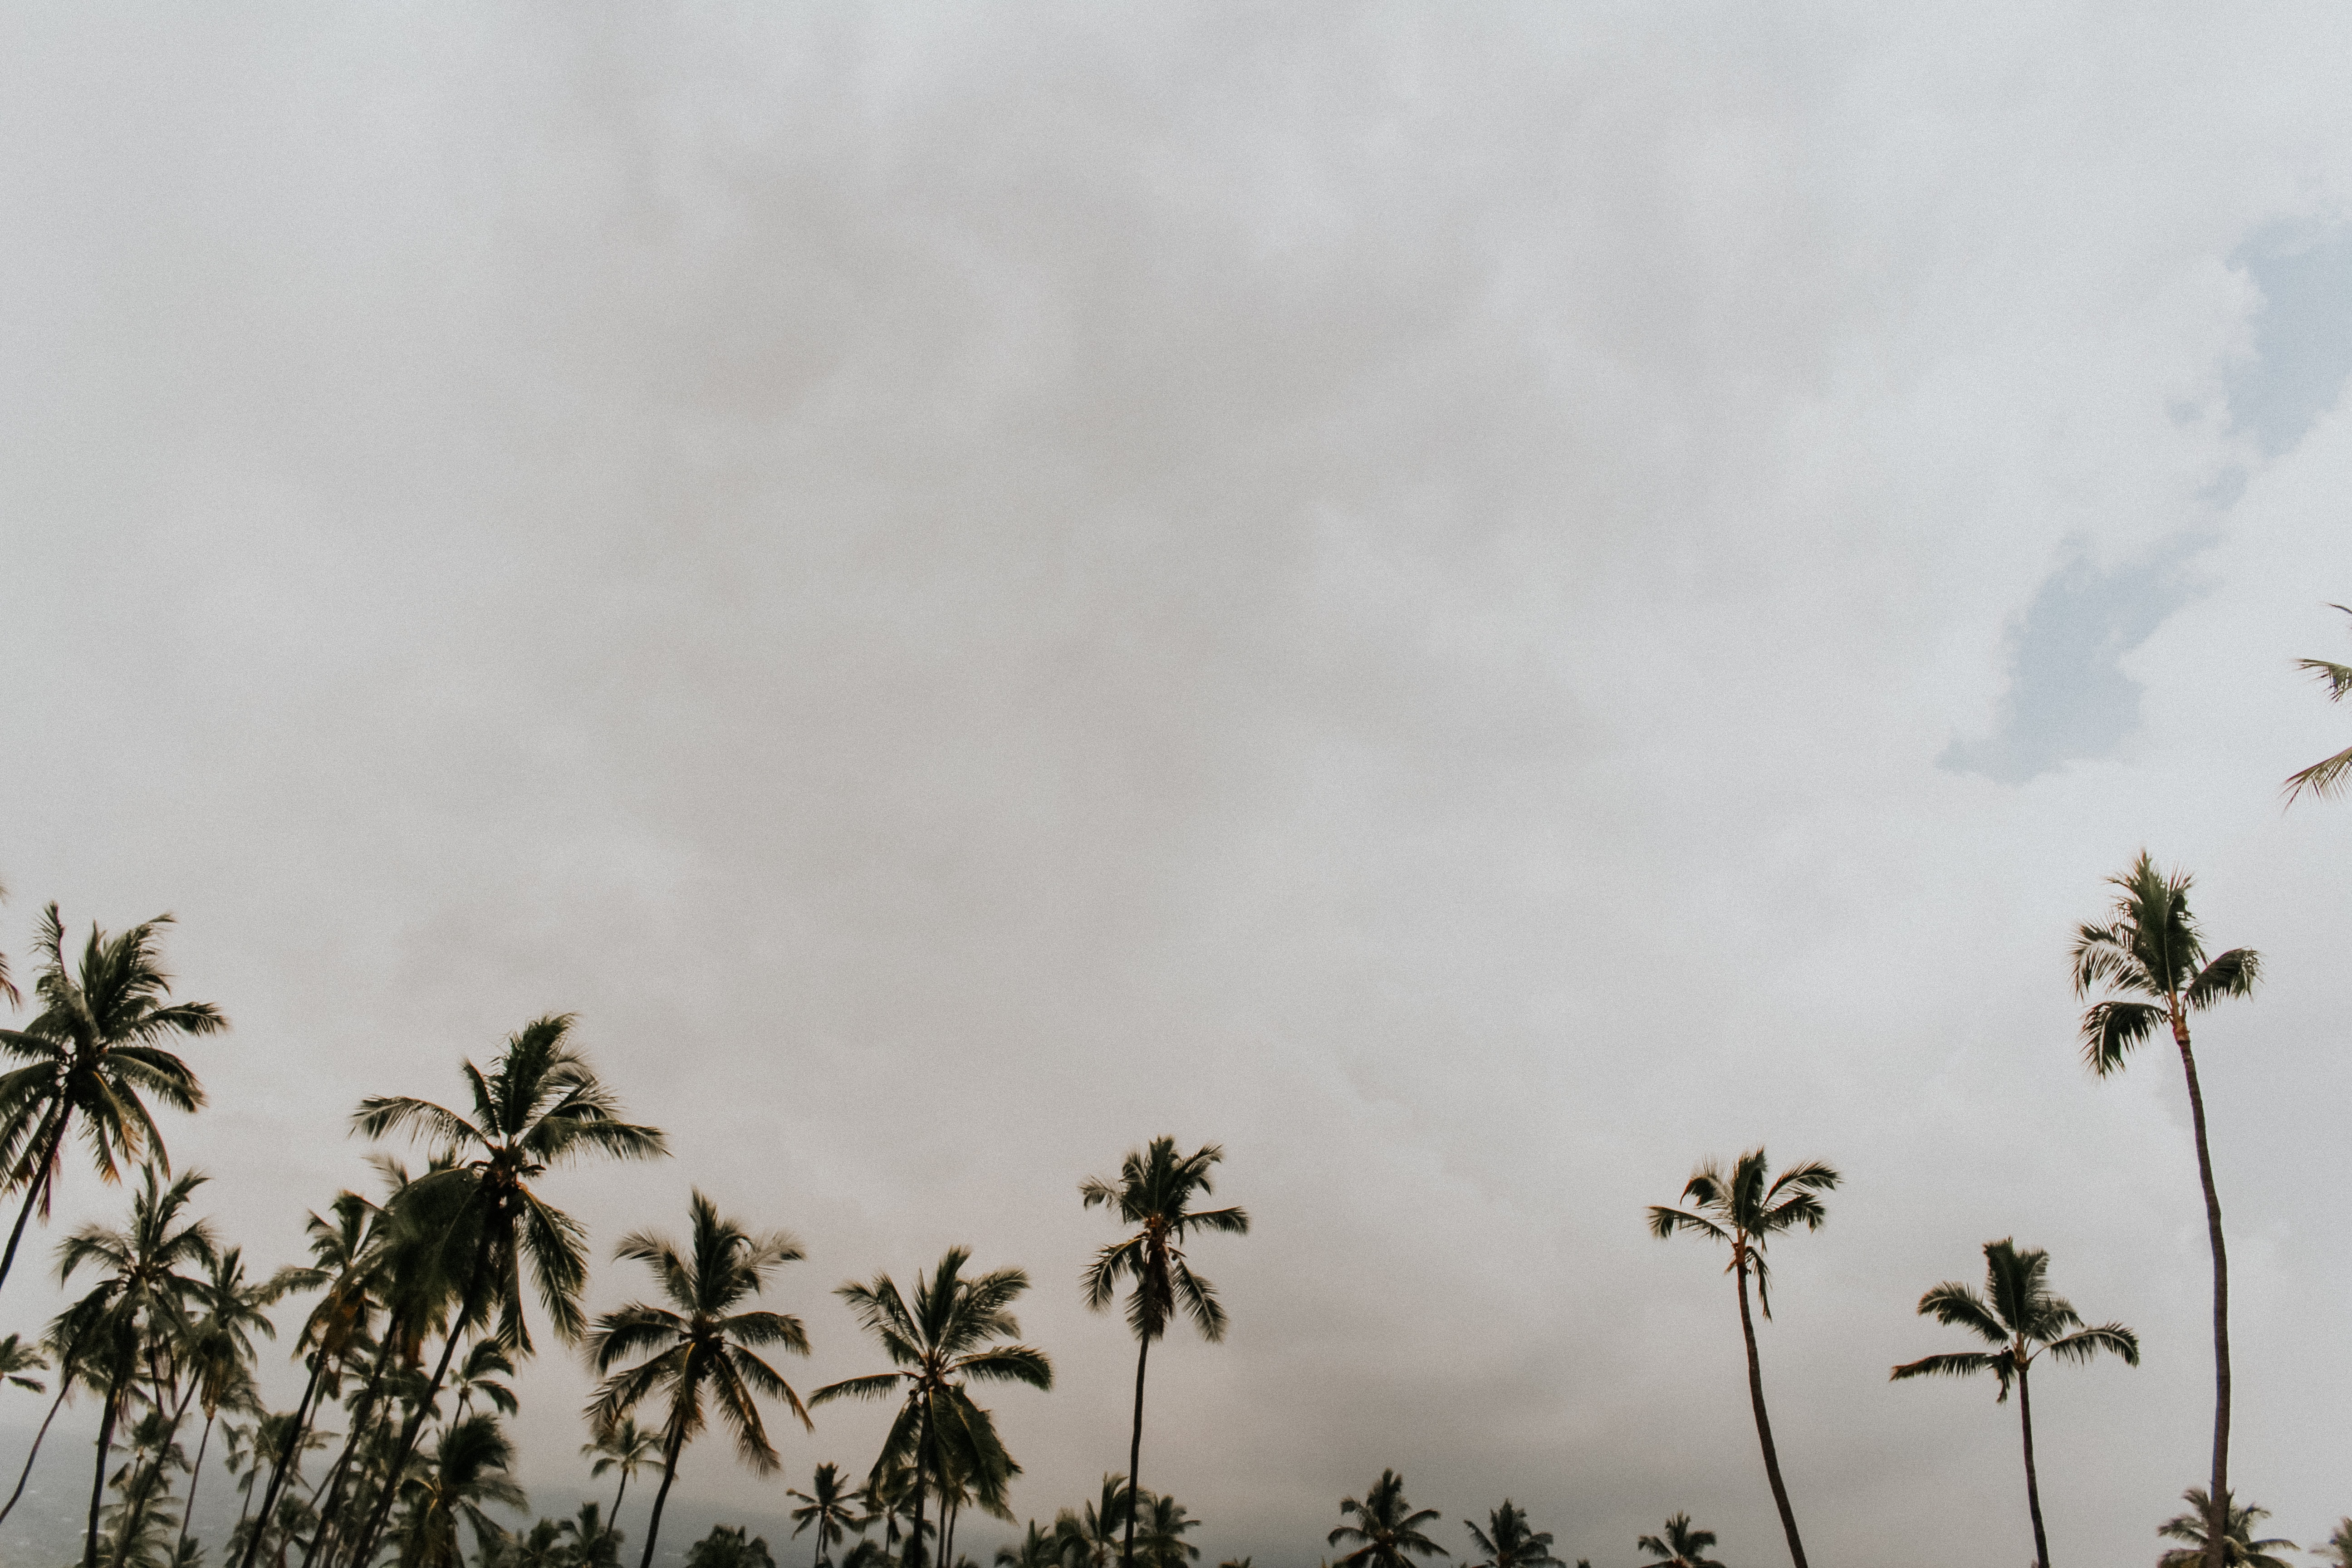 coconut trees under the cloudy sky during daytime